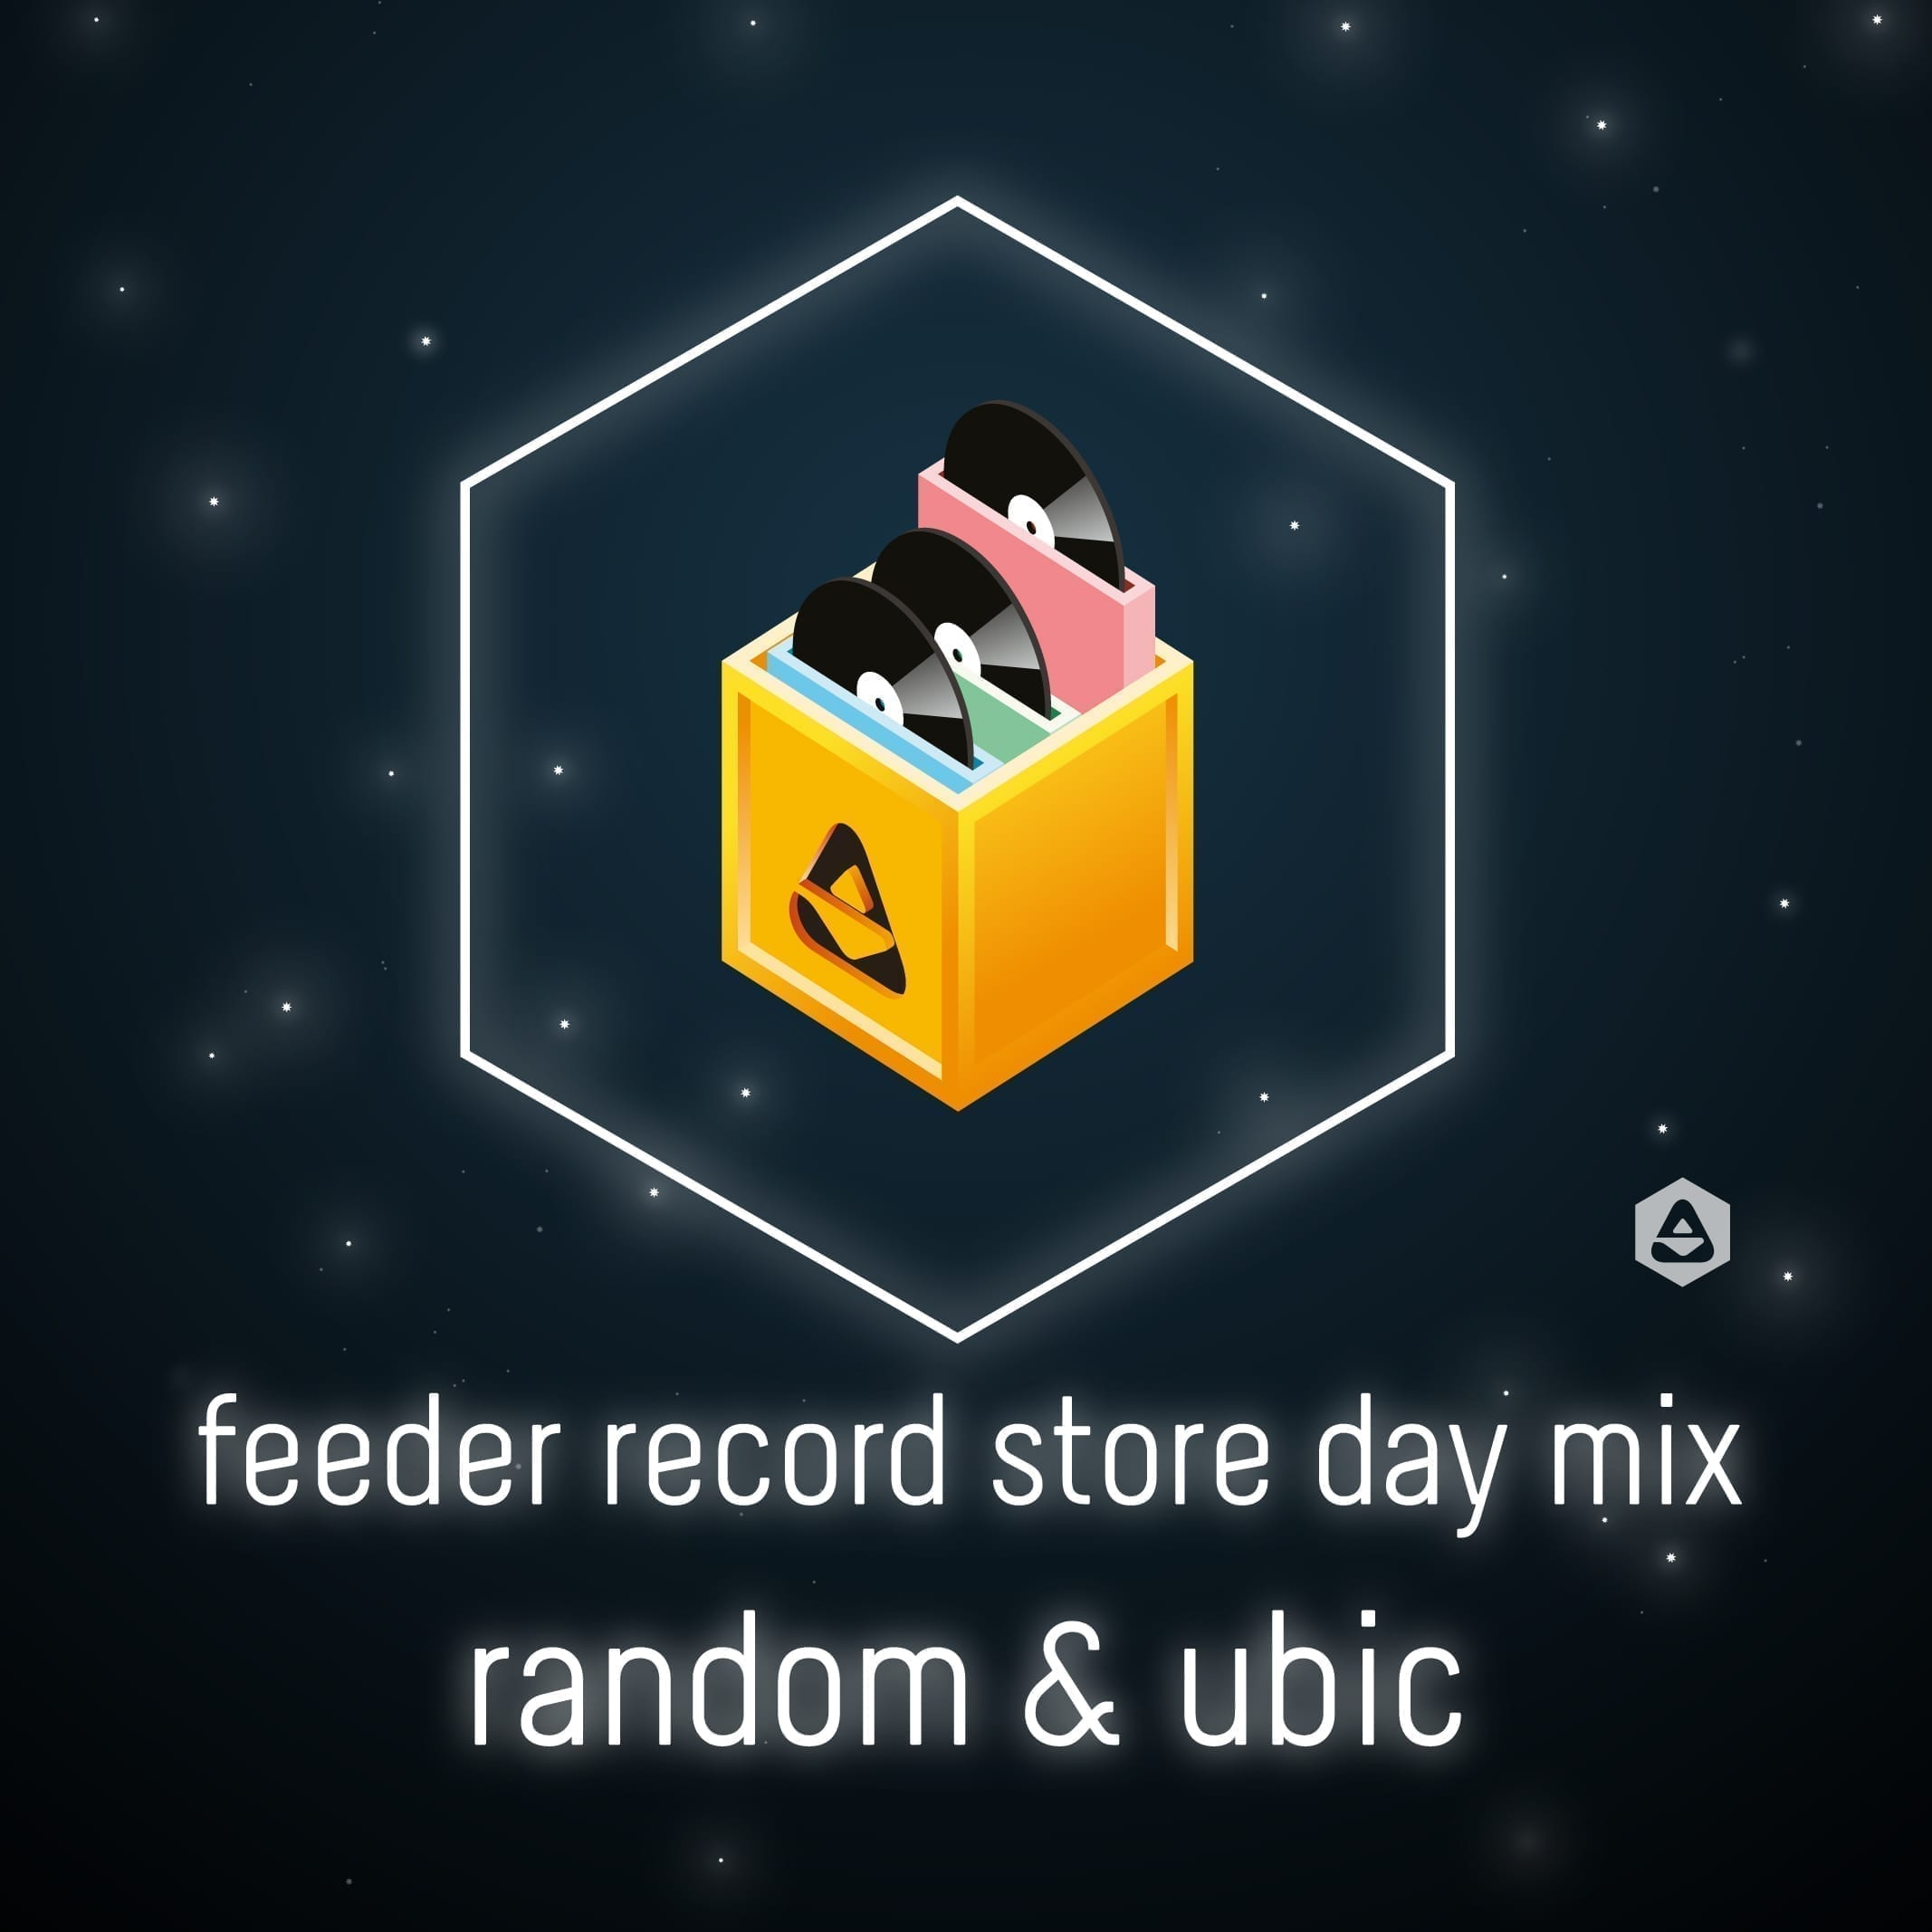 Celebrating Record store day with a vinyl only mix by random & ubic